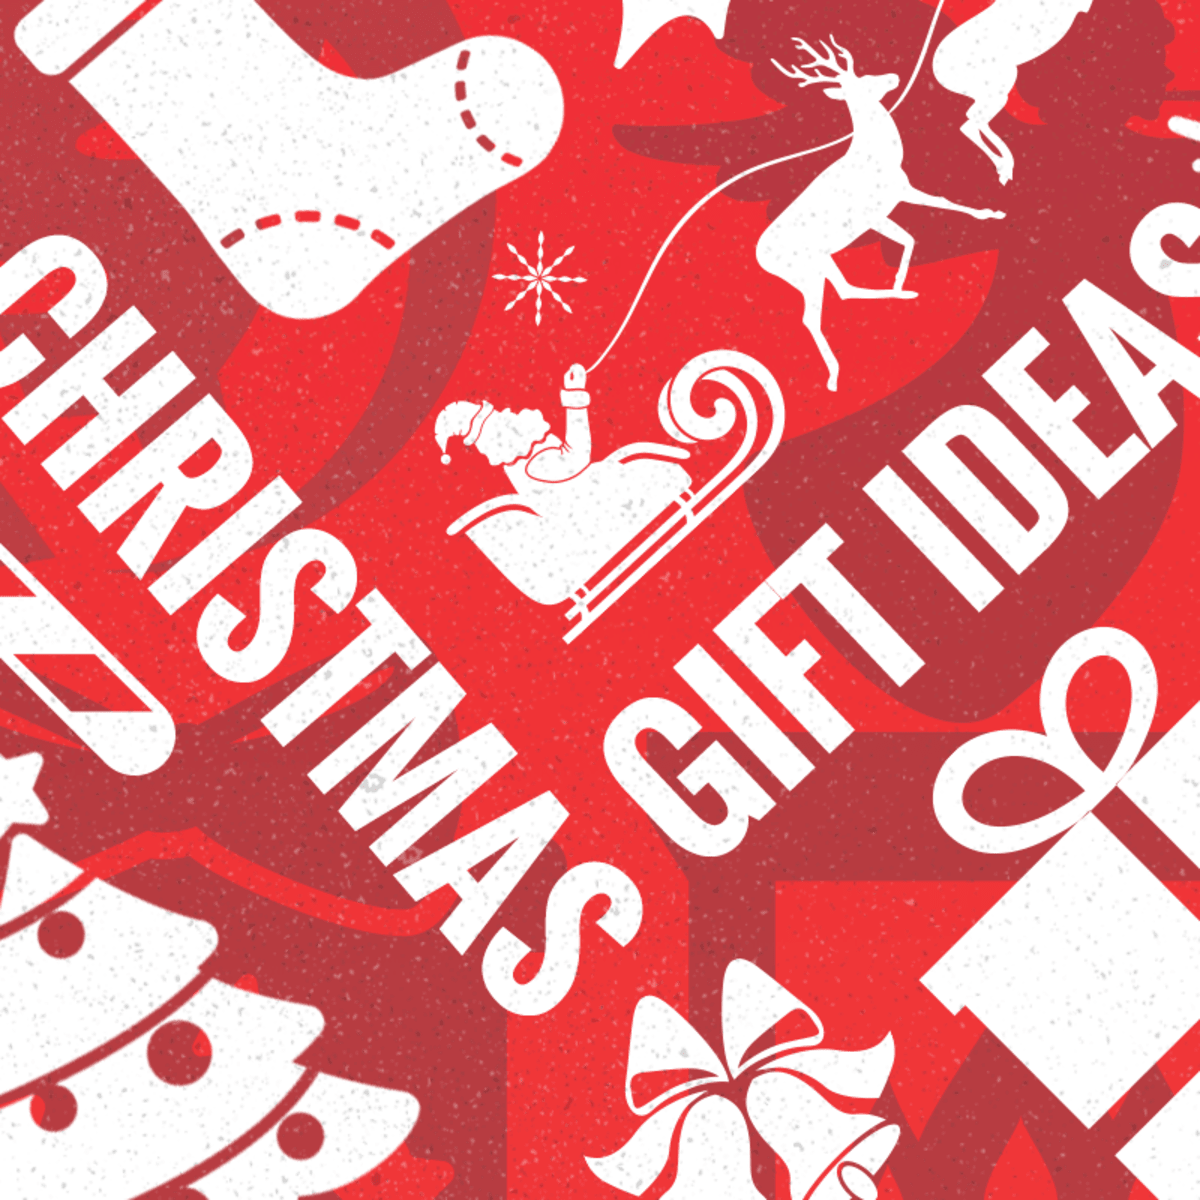 30 Christmas Gift Ideas For Anyone In 2019 Thestreet